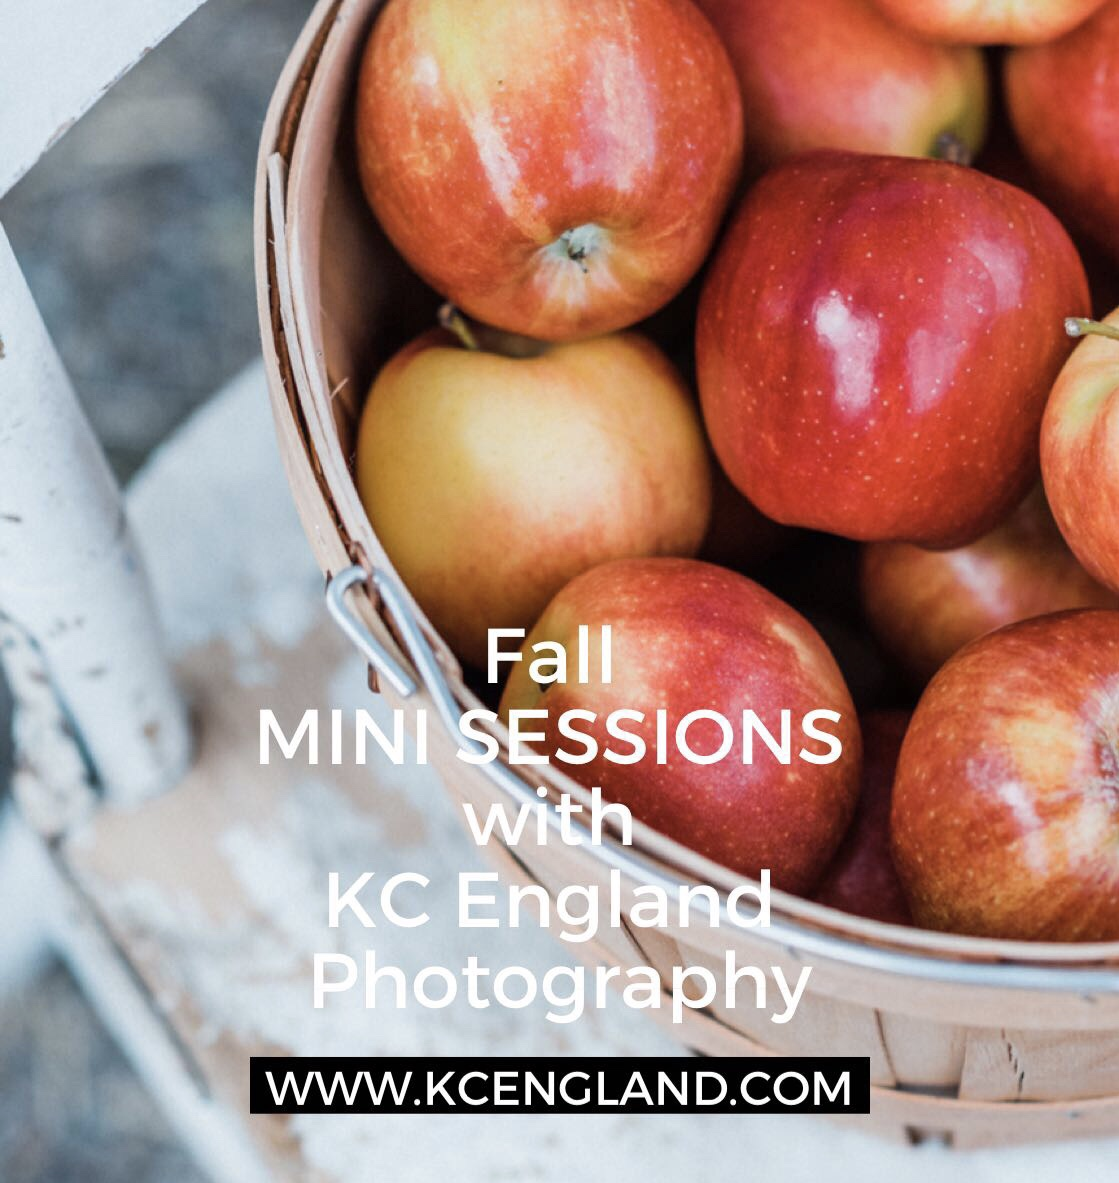 Fall Mini Sessions with KC England Photography.jpg